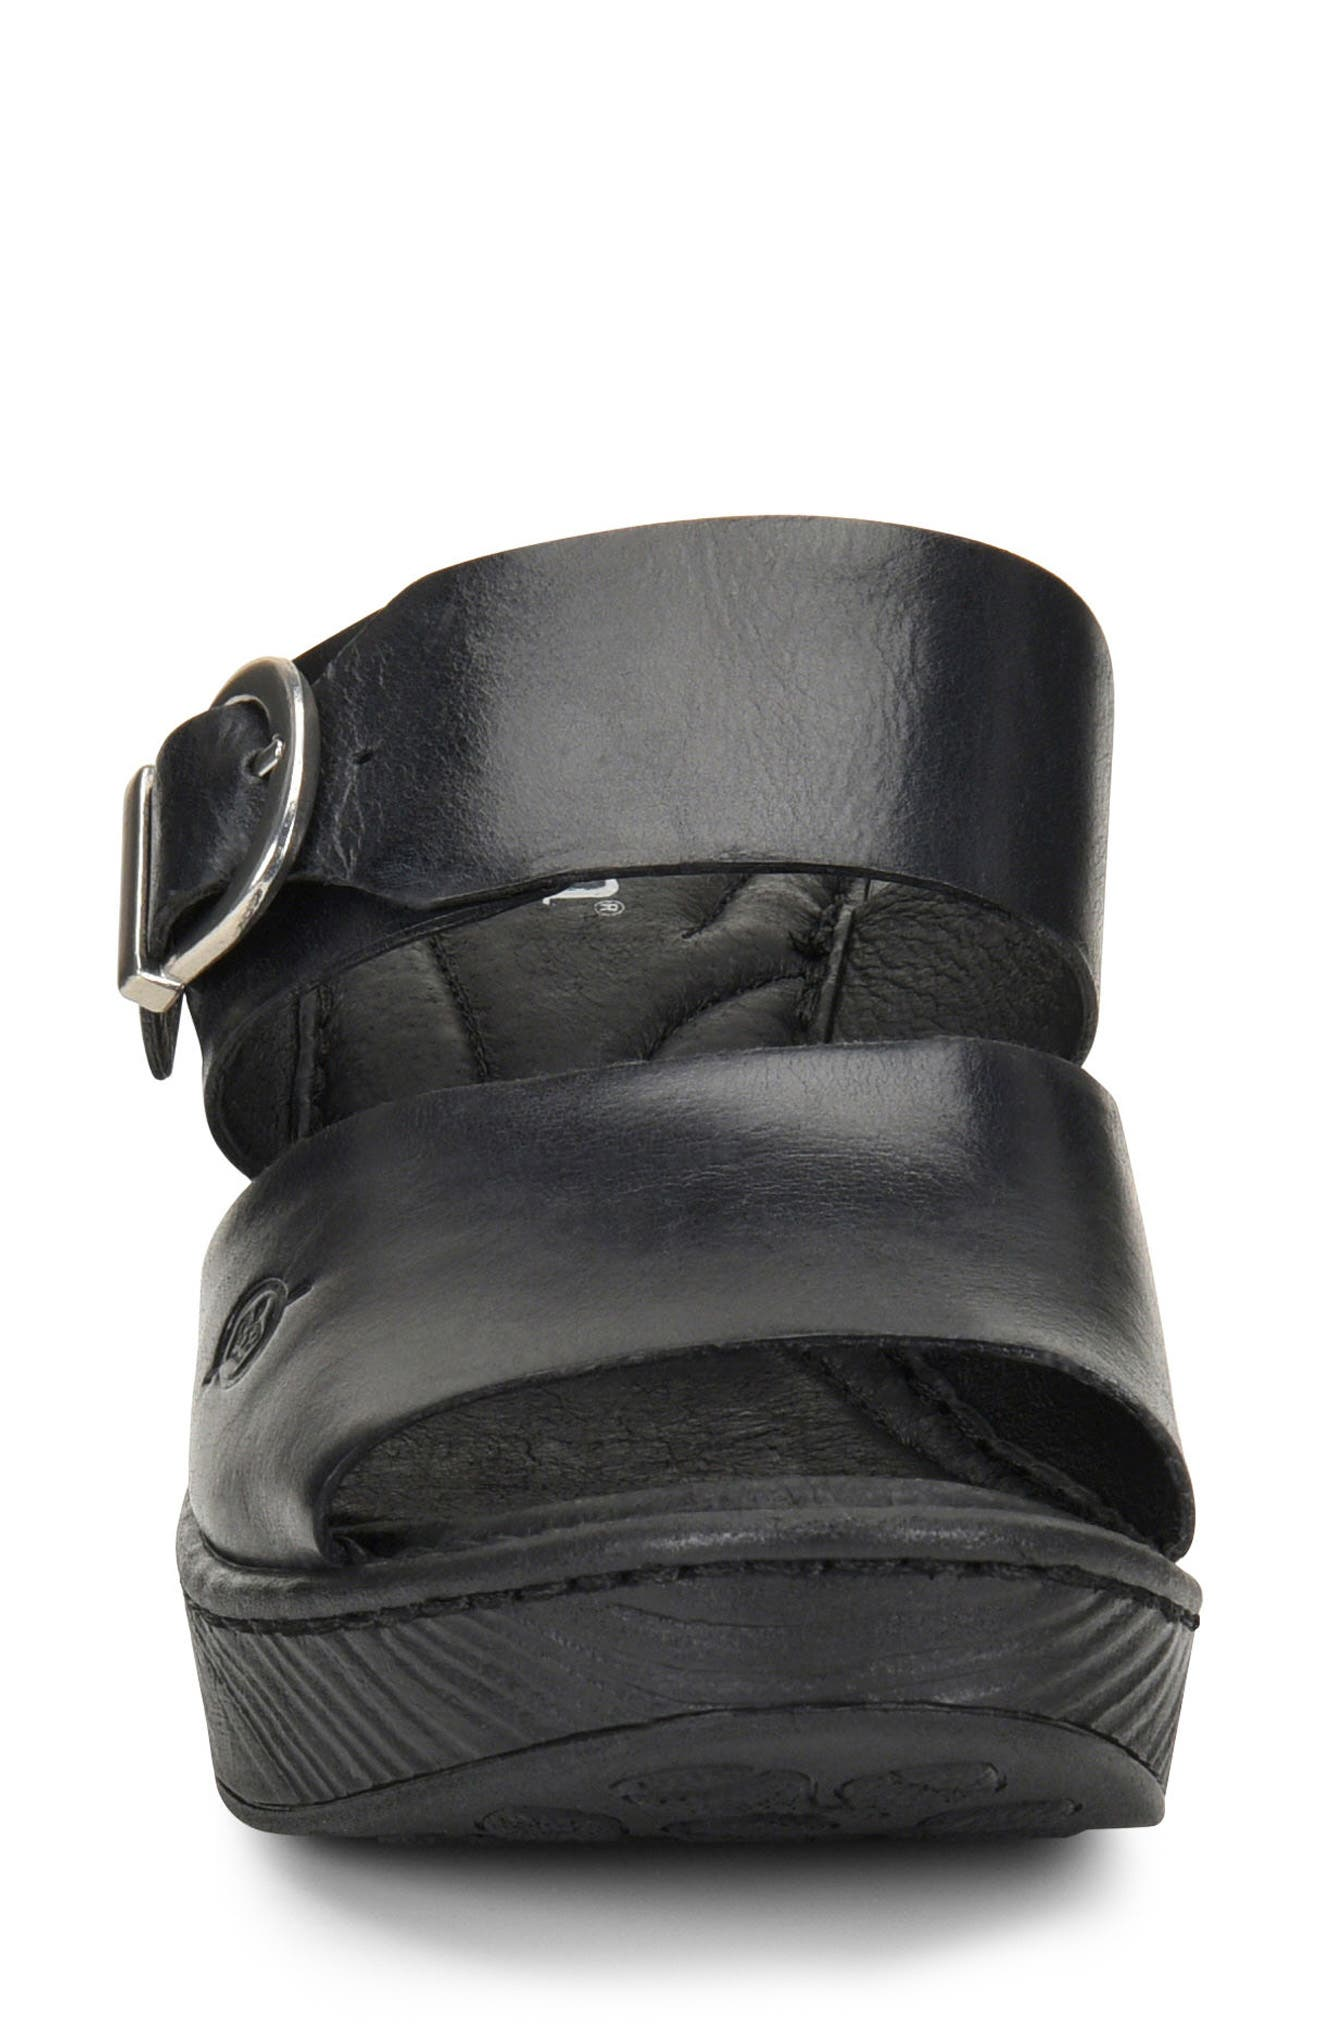 Carrabelle Platform Sandal,                             Alternate thumbnail 4, color,                             BLACK LEATHER